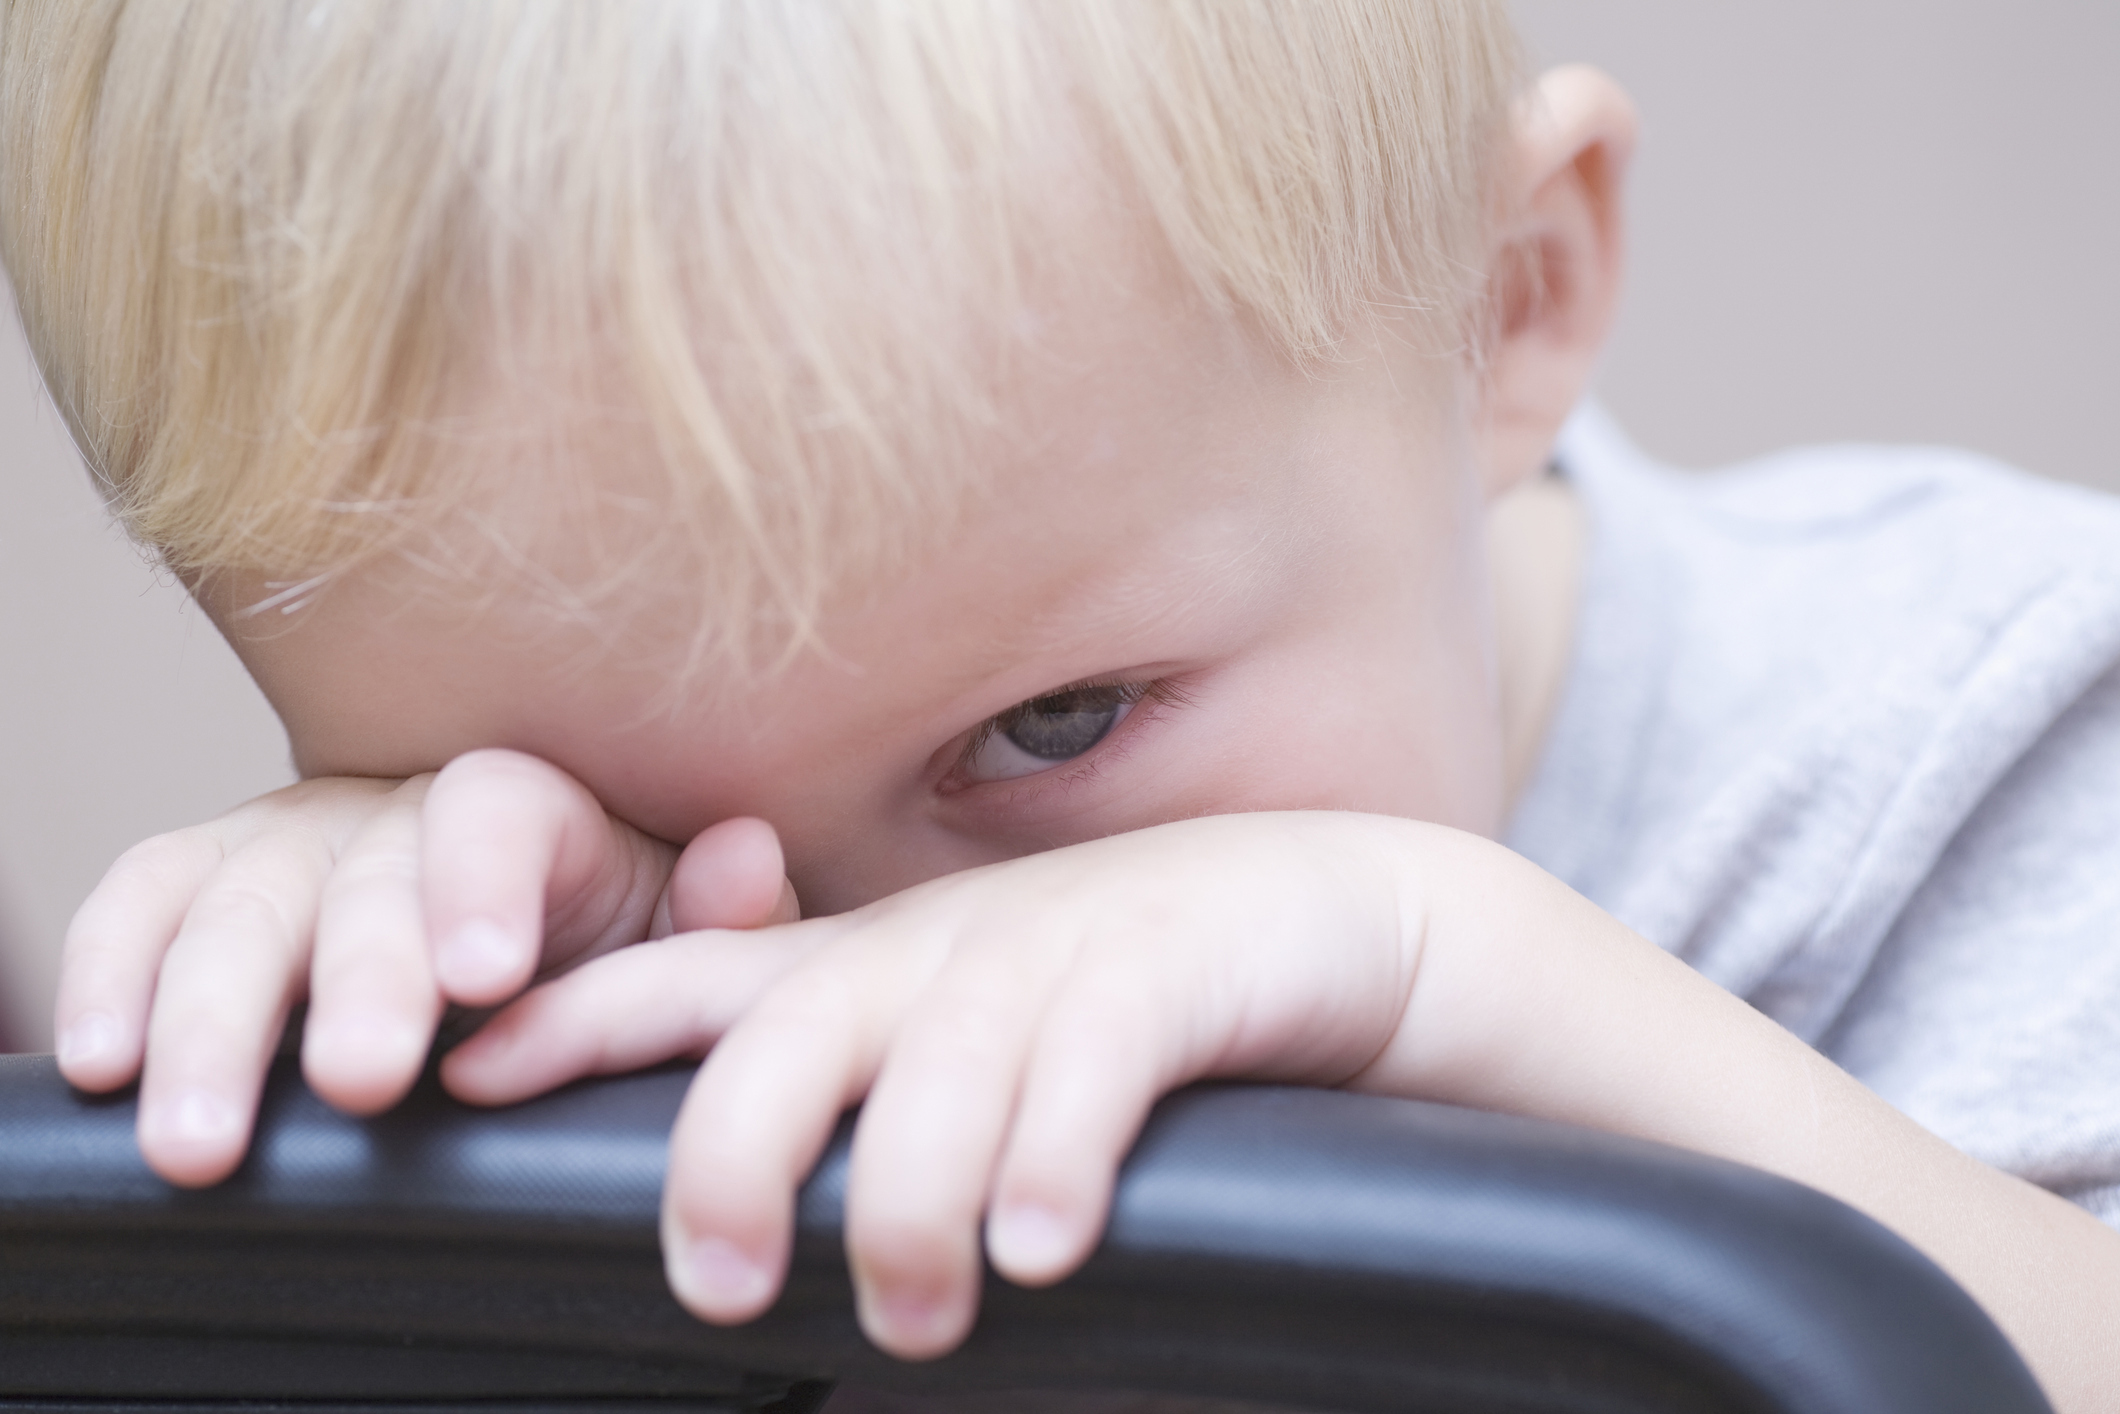 Where toddlers look is affected by genes and altered in autism